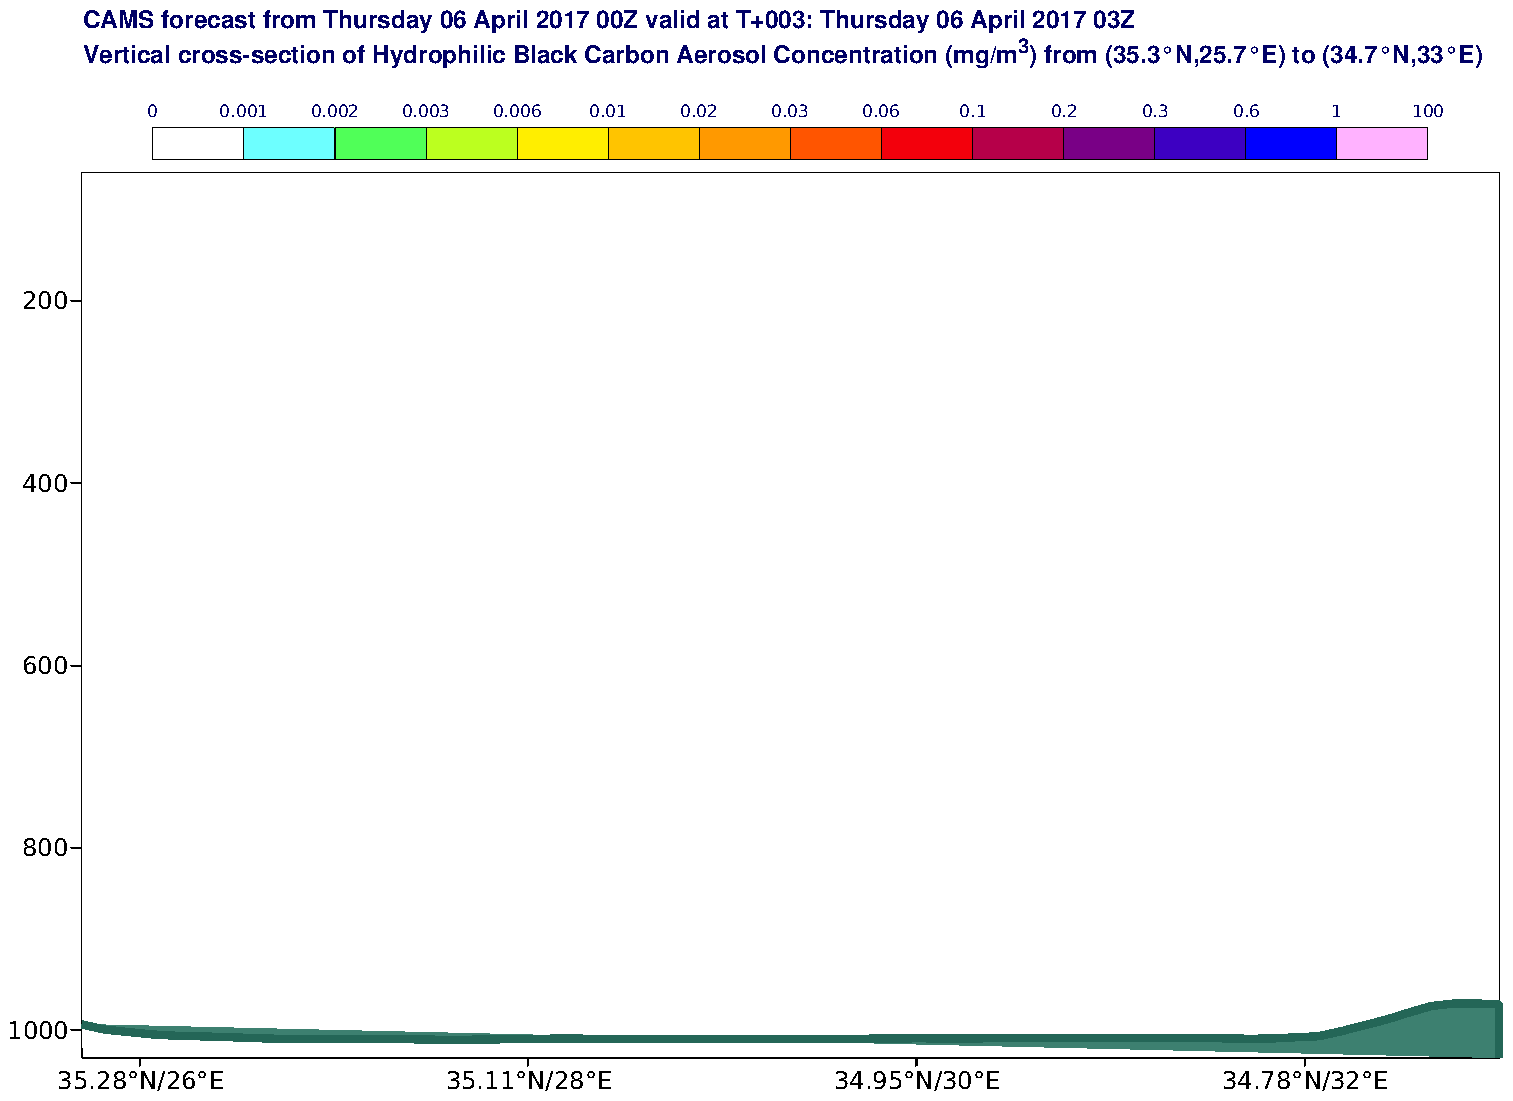 Vertical cross-section of Hydrophilic Black Carbon Aerosol Concentration (mg/m3) valid at T3 - 2017-04-06 03:00